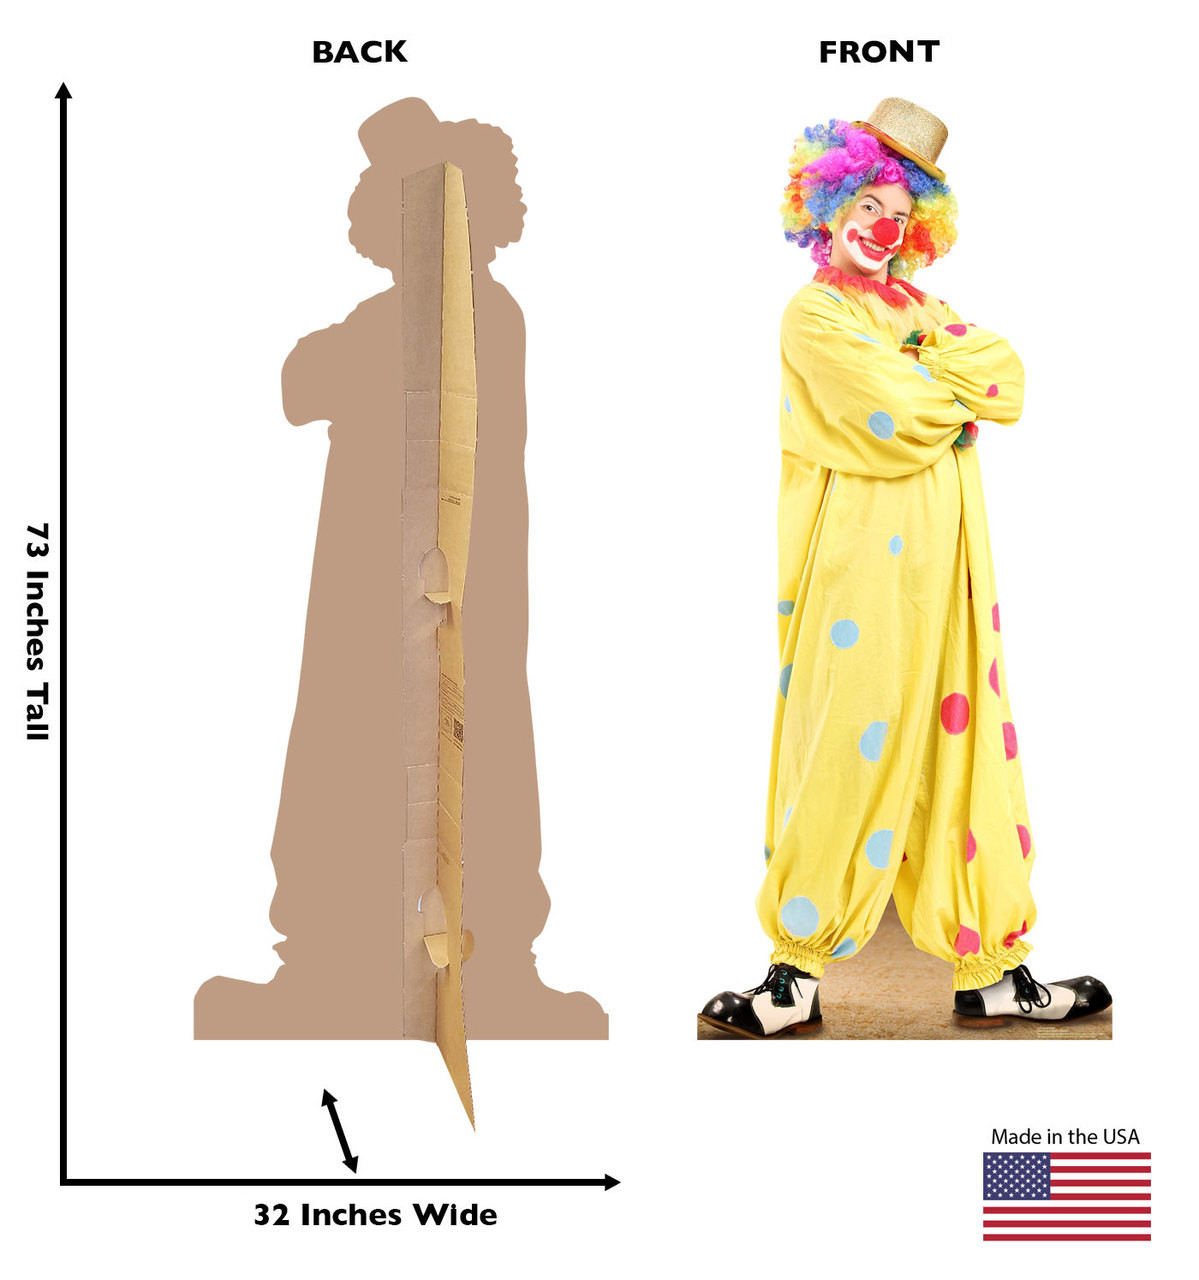 Standee front and back showing dimensions.